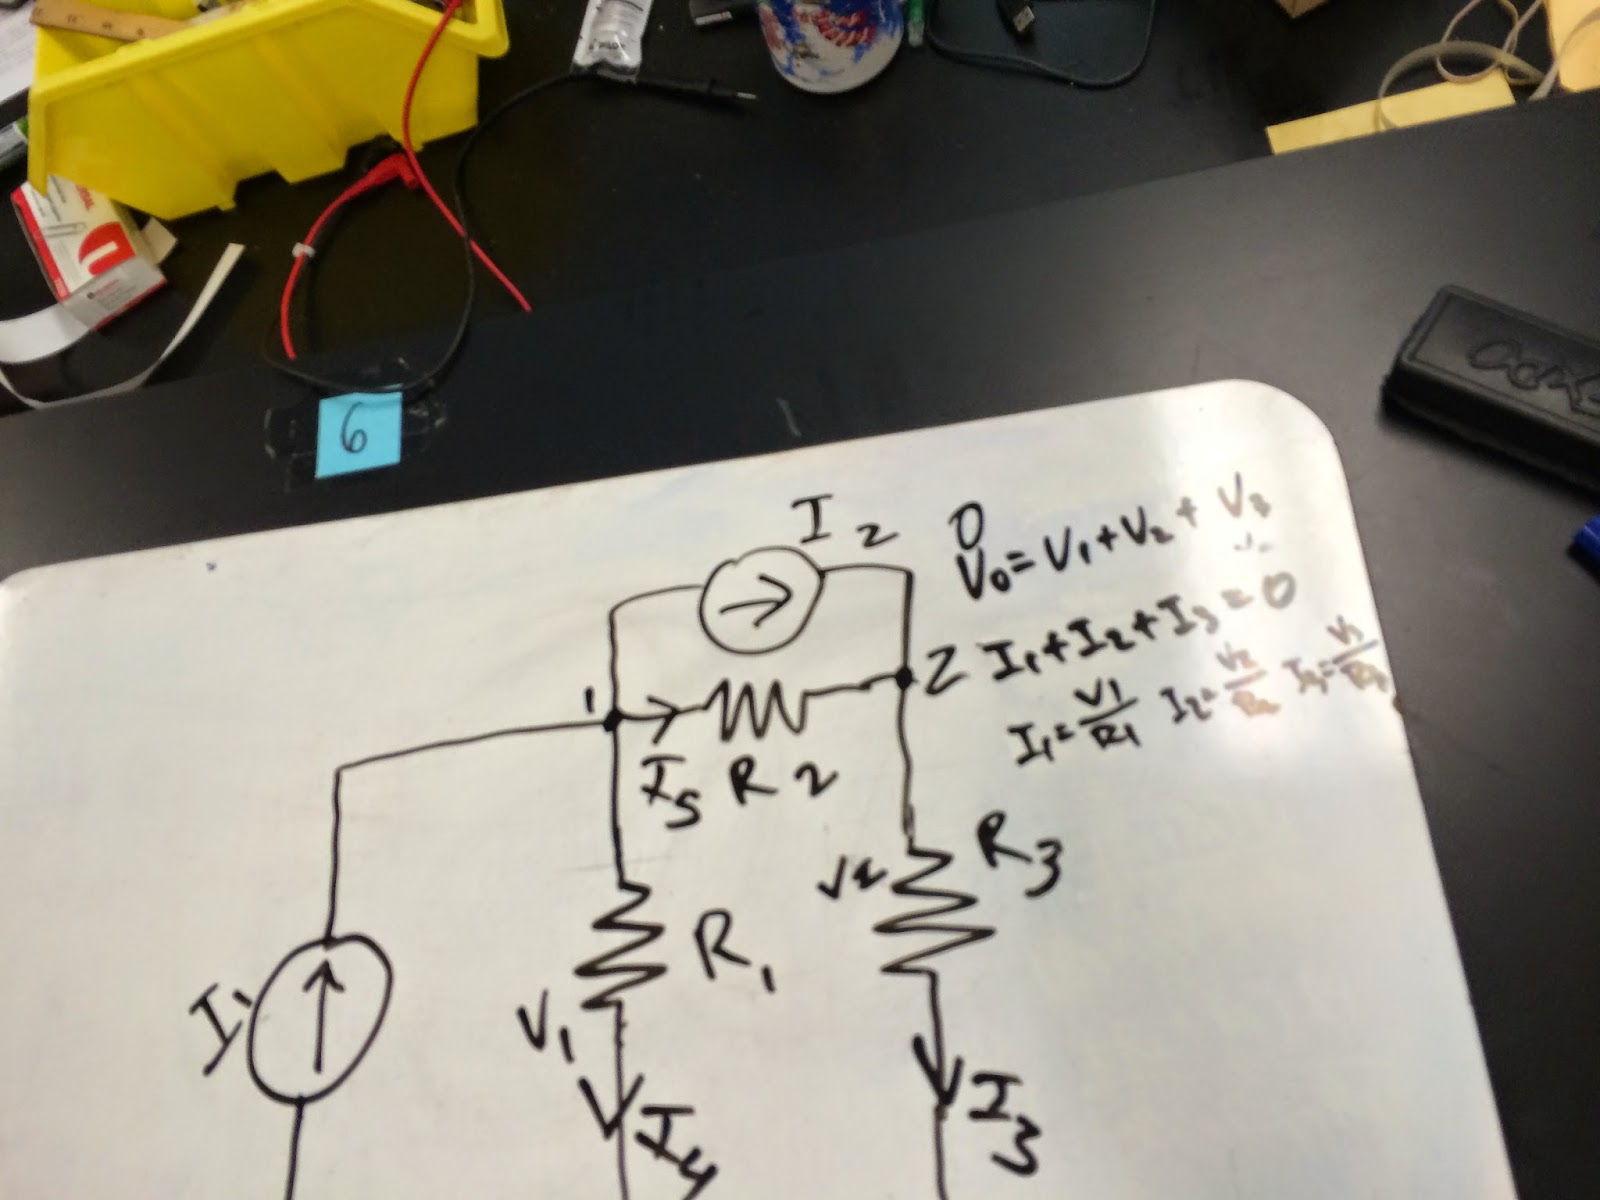 Engineering 44 Swang March 2015 Thermometerwithstandalonearduinouno Images Thermistor Circuitjpg In Todays Lab We Used A Device Called Whose Resistance Changes With Temperature To Design Measurement System